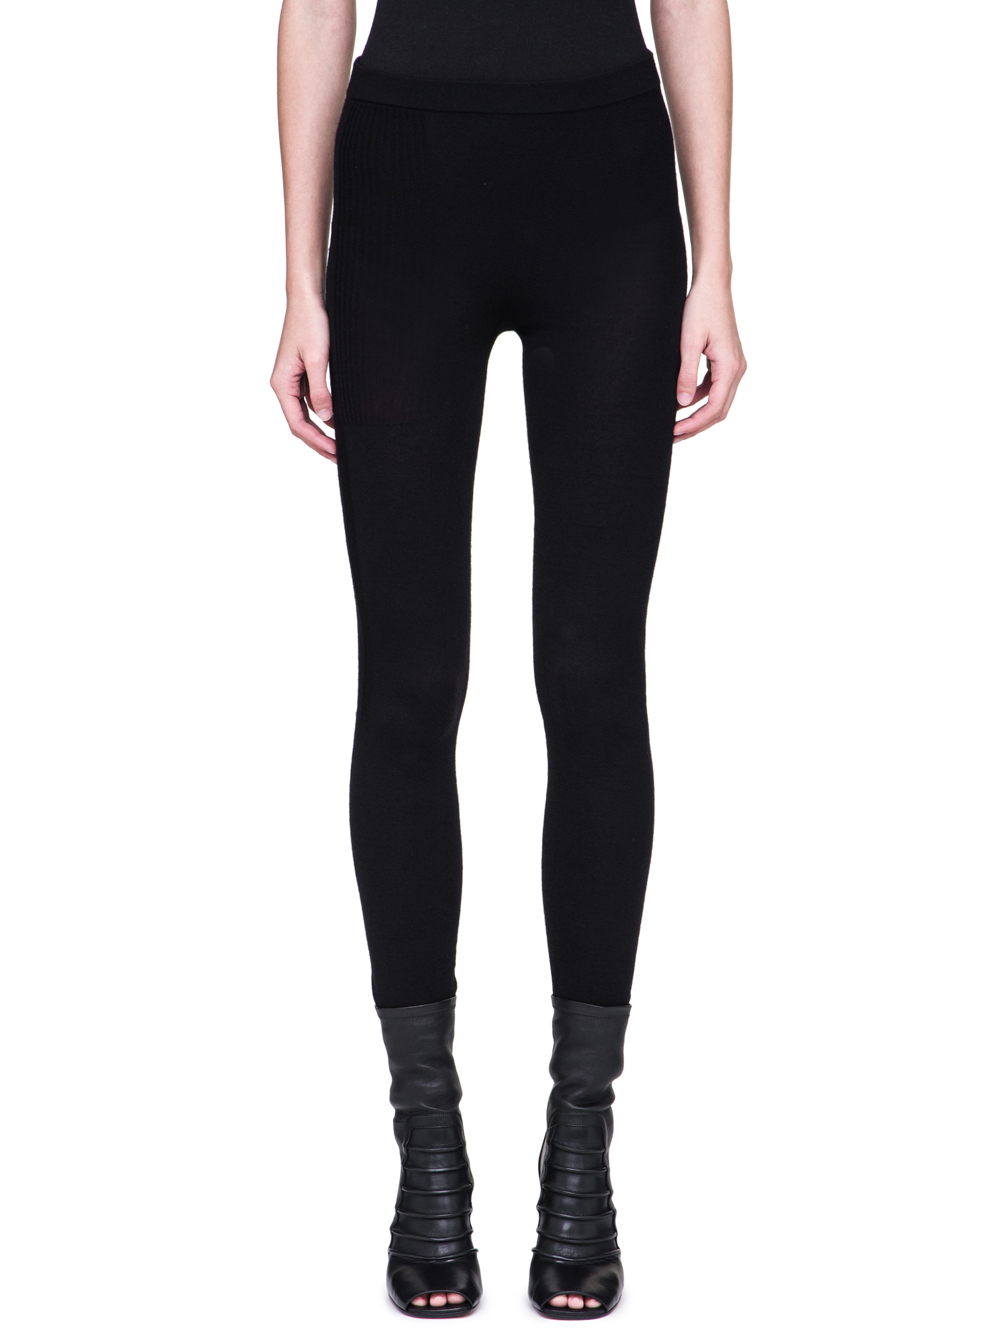 RICK OWENS FW18 SISYPHUS OFF-THE-RUNWAY LEGGINGS IN BLACK STRETCH CASHMERE